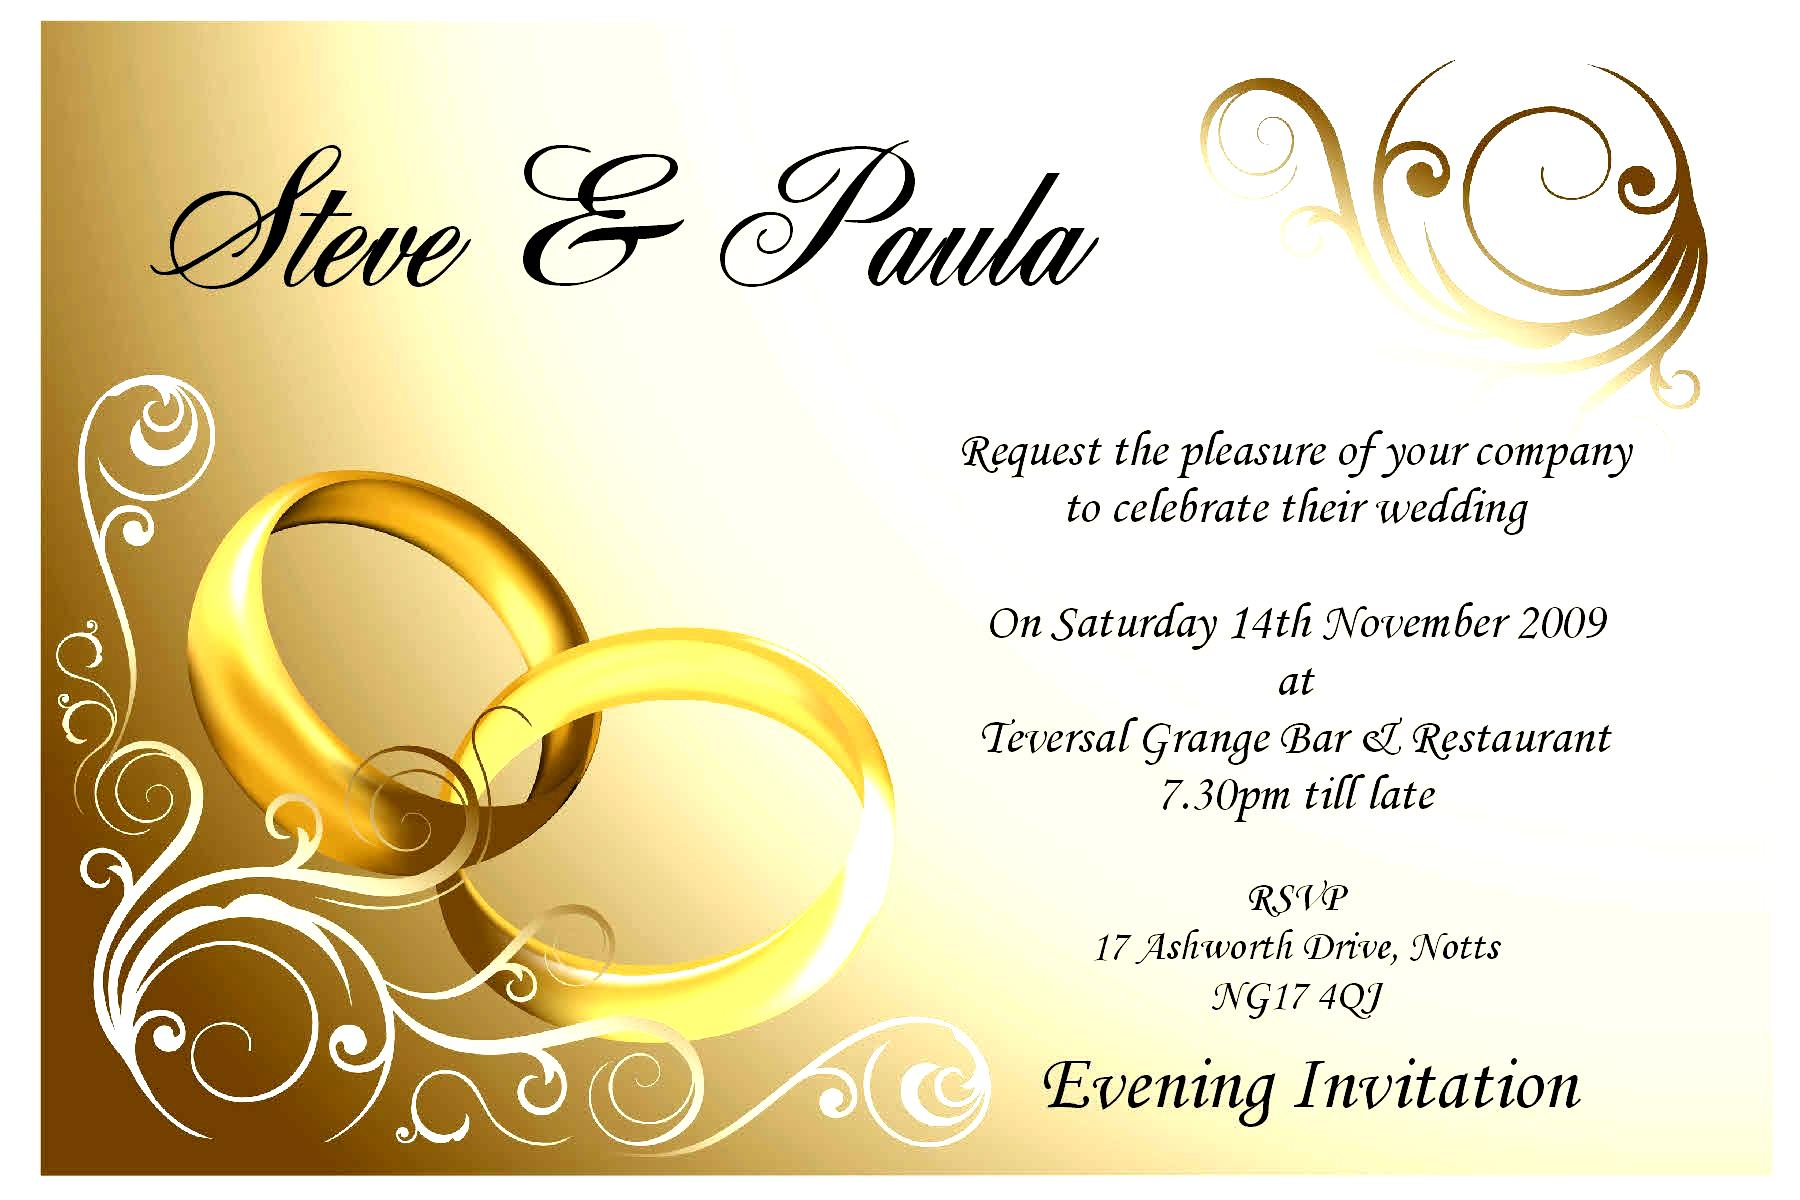 Invitation Card By Bebi Devi 458776 Freelancer On Guru